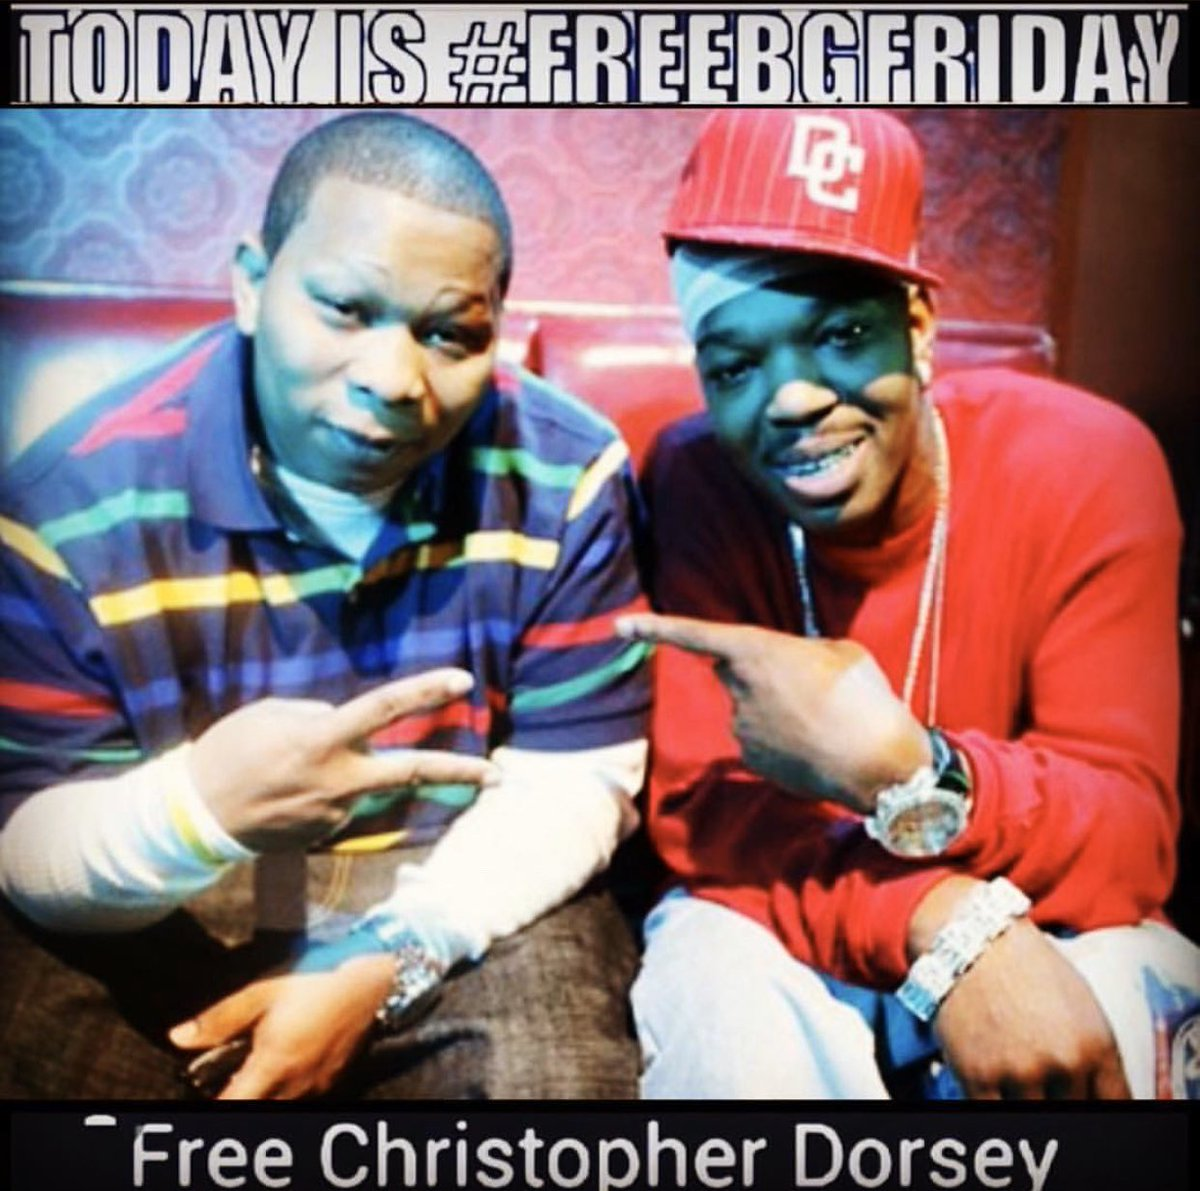 Y'all know what it's hitting for #FreeBGFriday #YaDigg 💯 @manniefresh been the #HoodChamp 💪🏽 the #streets know what's up #RNS 💯  #FreeBG #FreeBGEveryday #FreeBGizzle #1OriginalHotBoy 🔥 #ChopperCity #LouisianaLandLord #Soon 🙏🏾 ⌛️